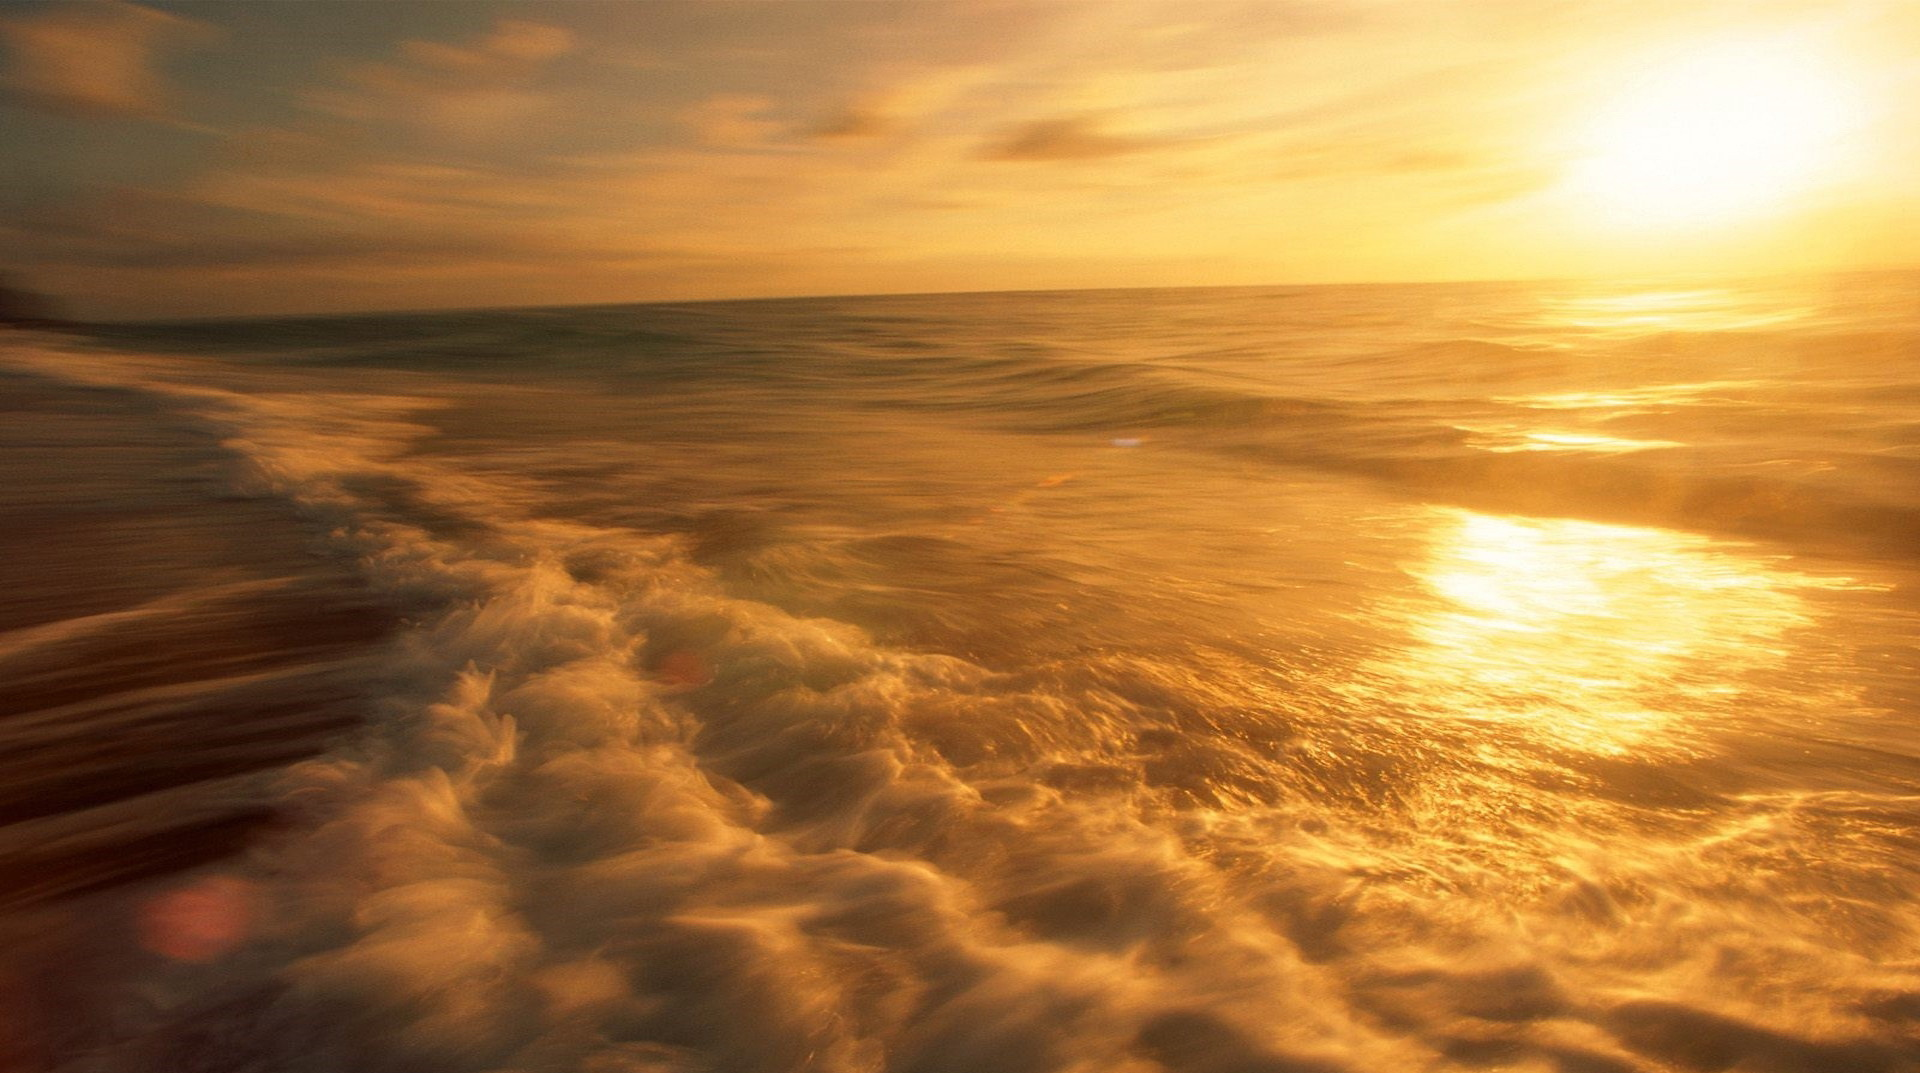 picture of natural scene - The Rising Sun, Golden Light on the Sea Surface, Twisting River 1920X1080 free wallpaper download